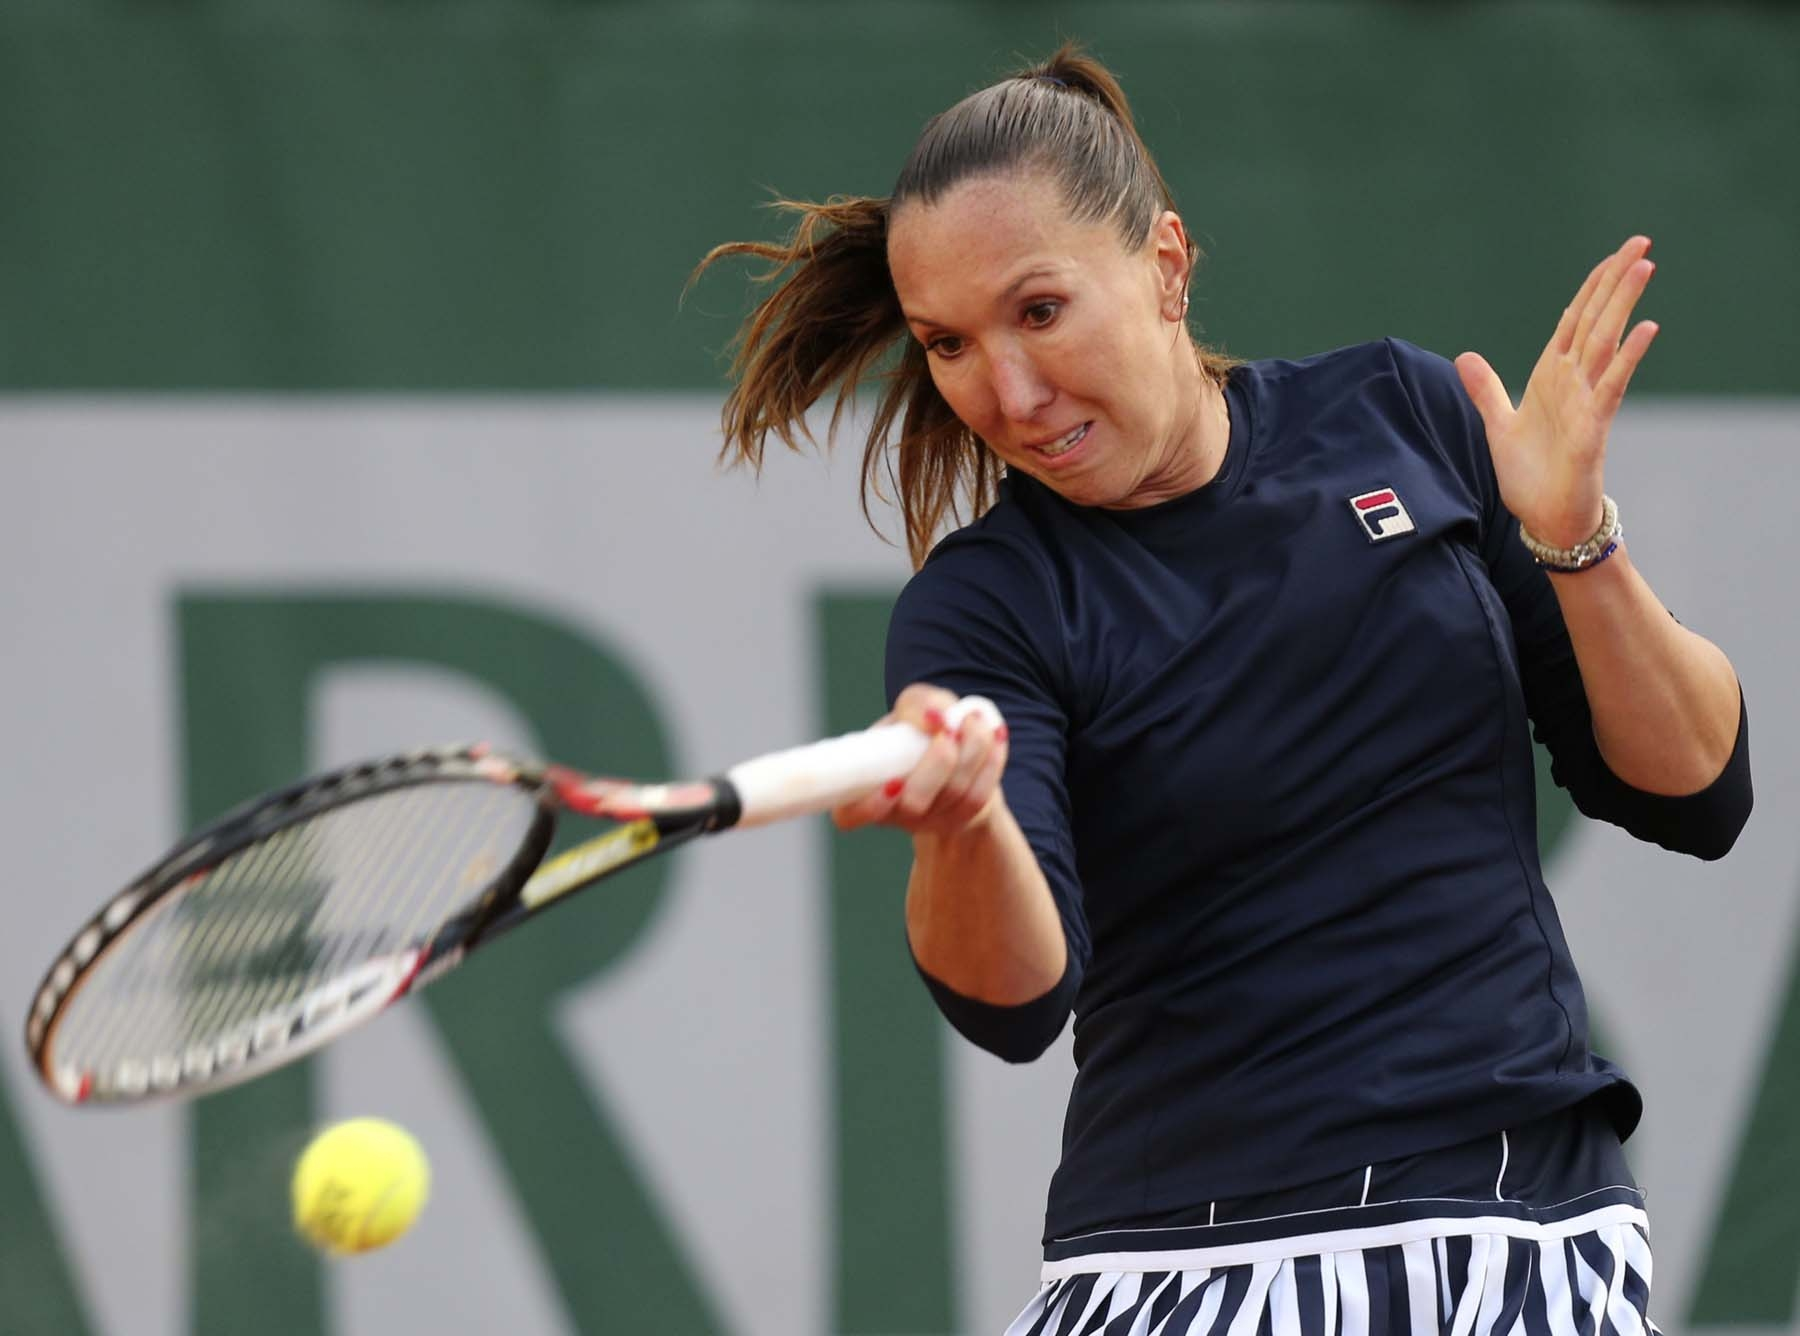 Jelena Jankovic is facing a difficult match against Cirstea